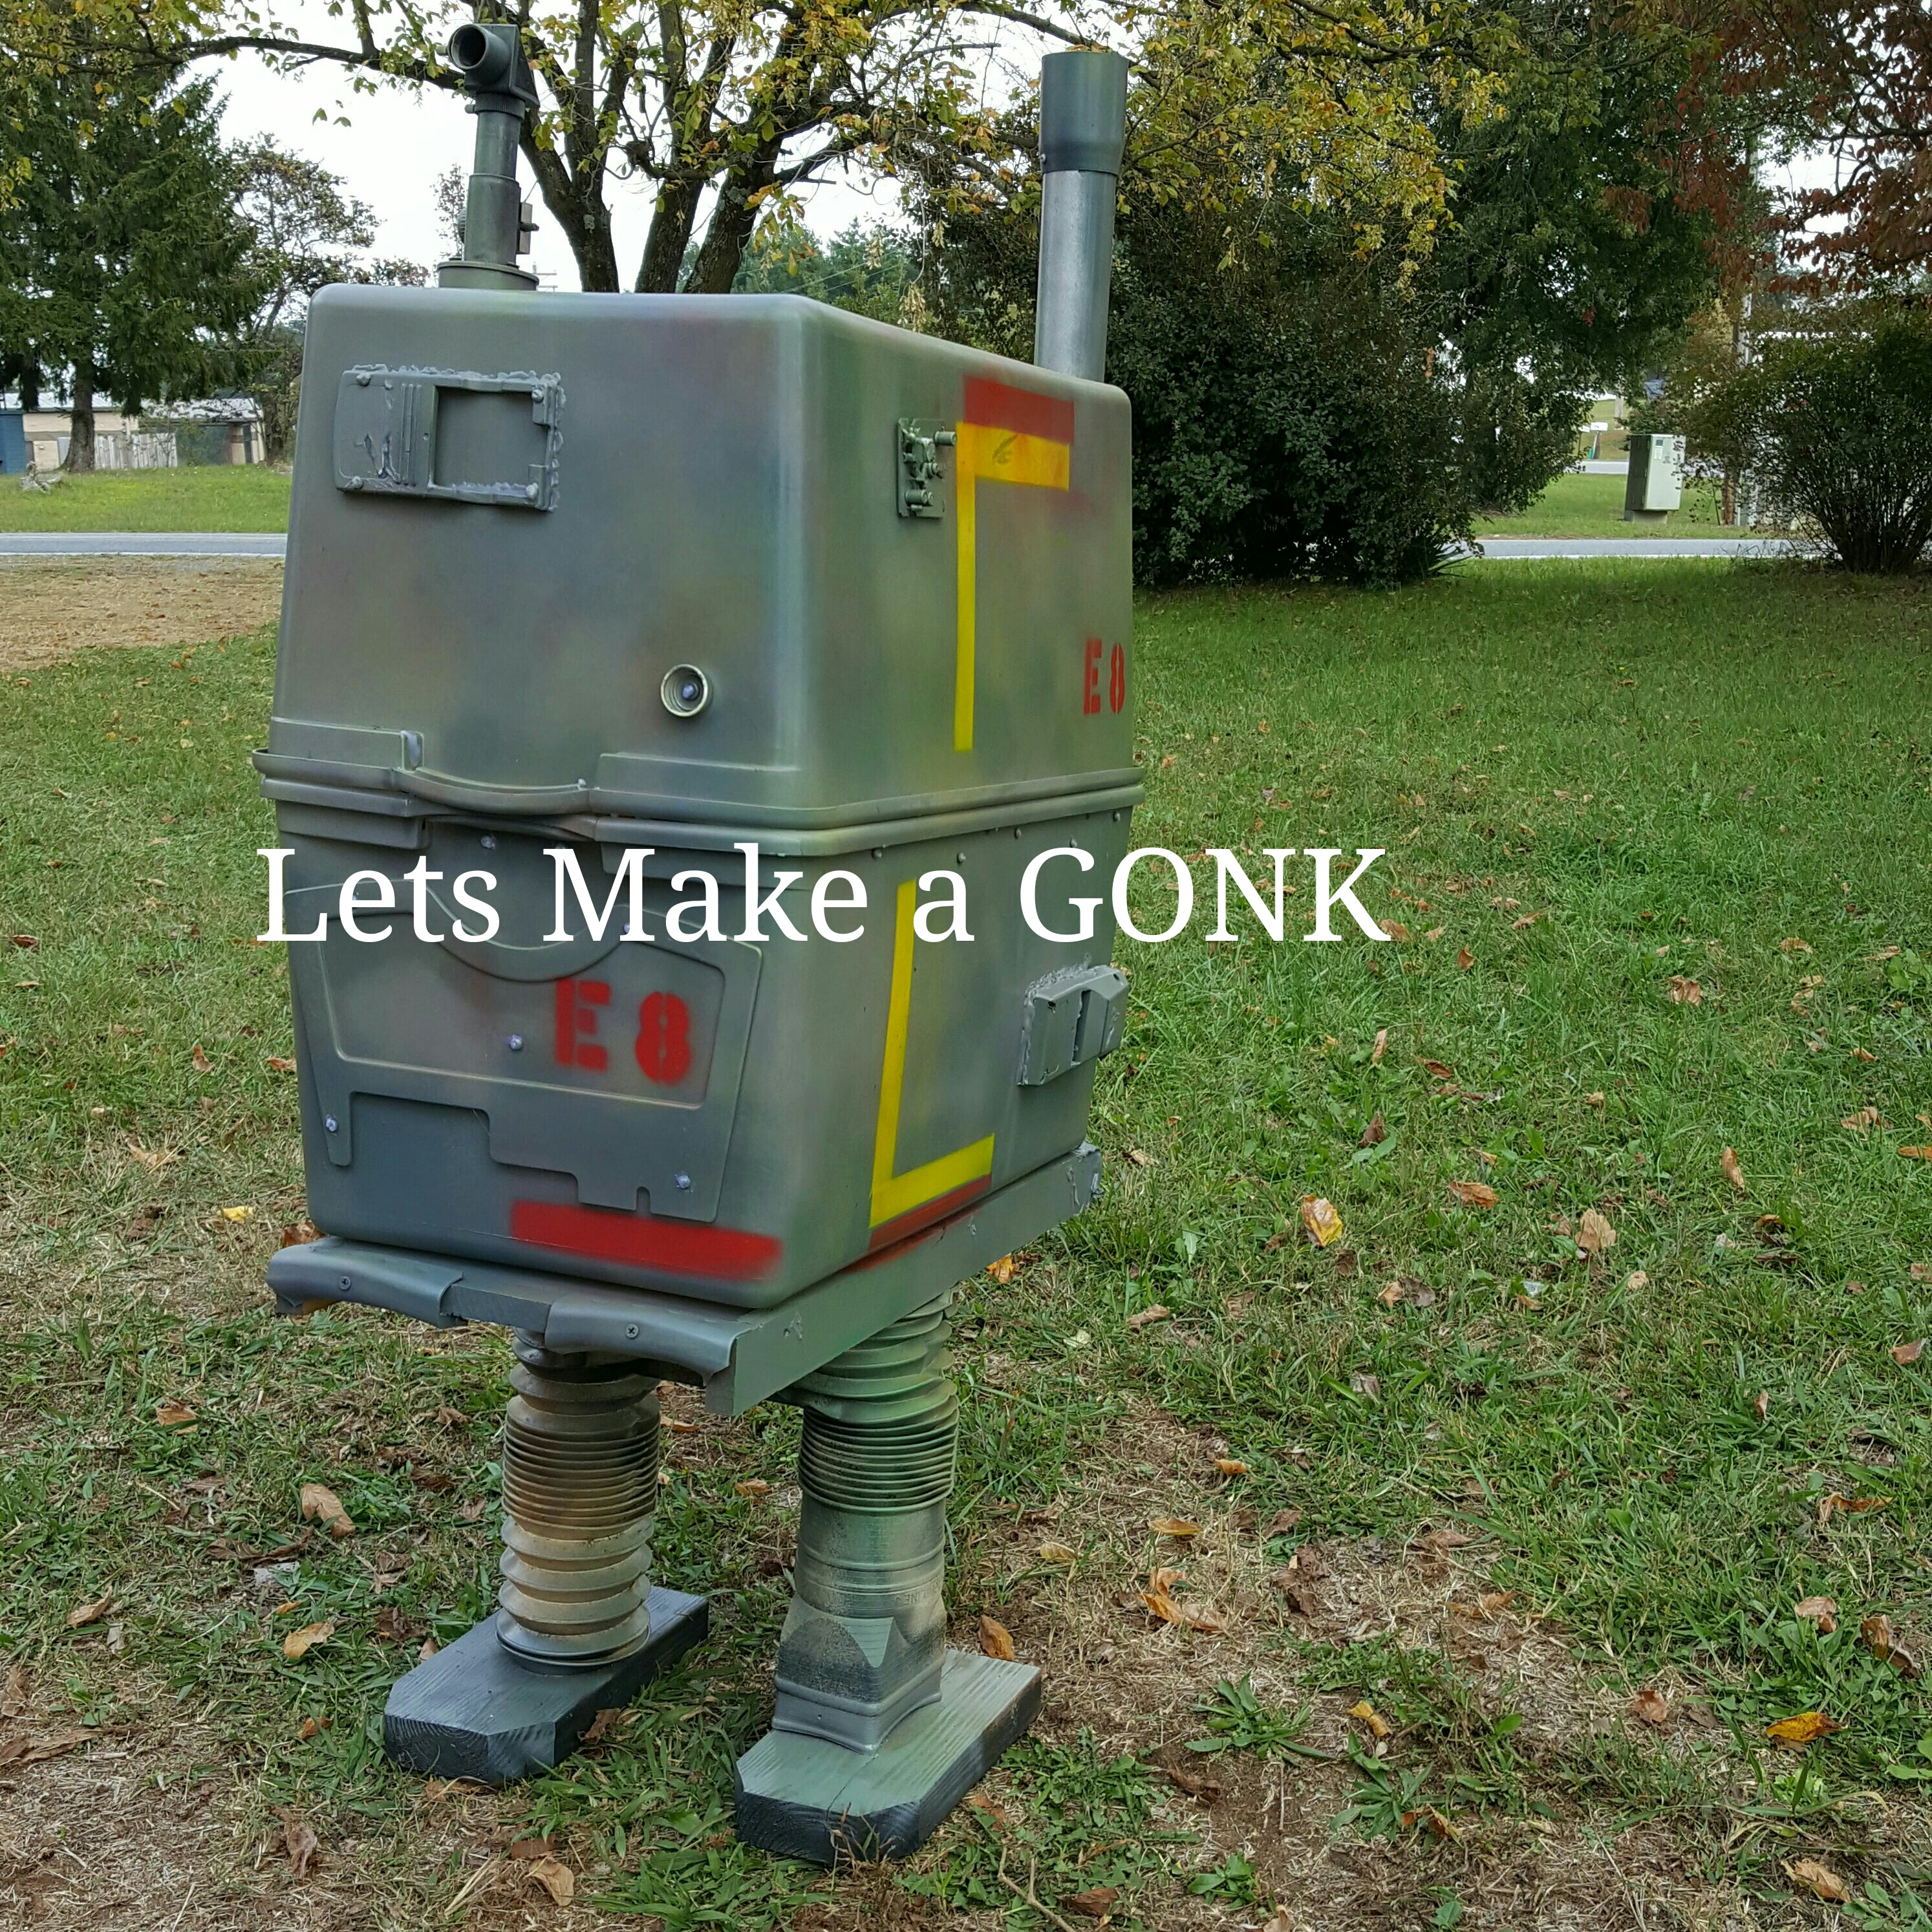 GONK Droid From Junk